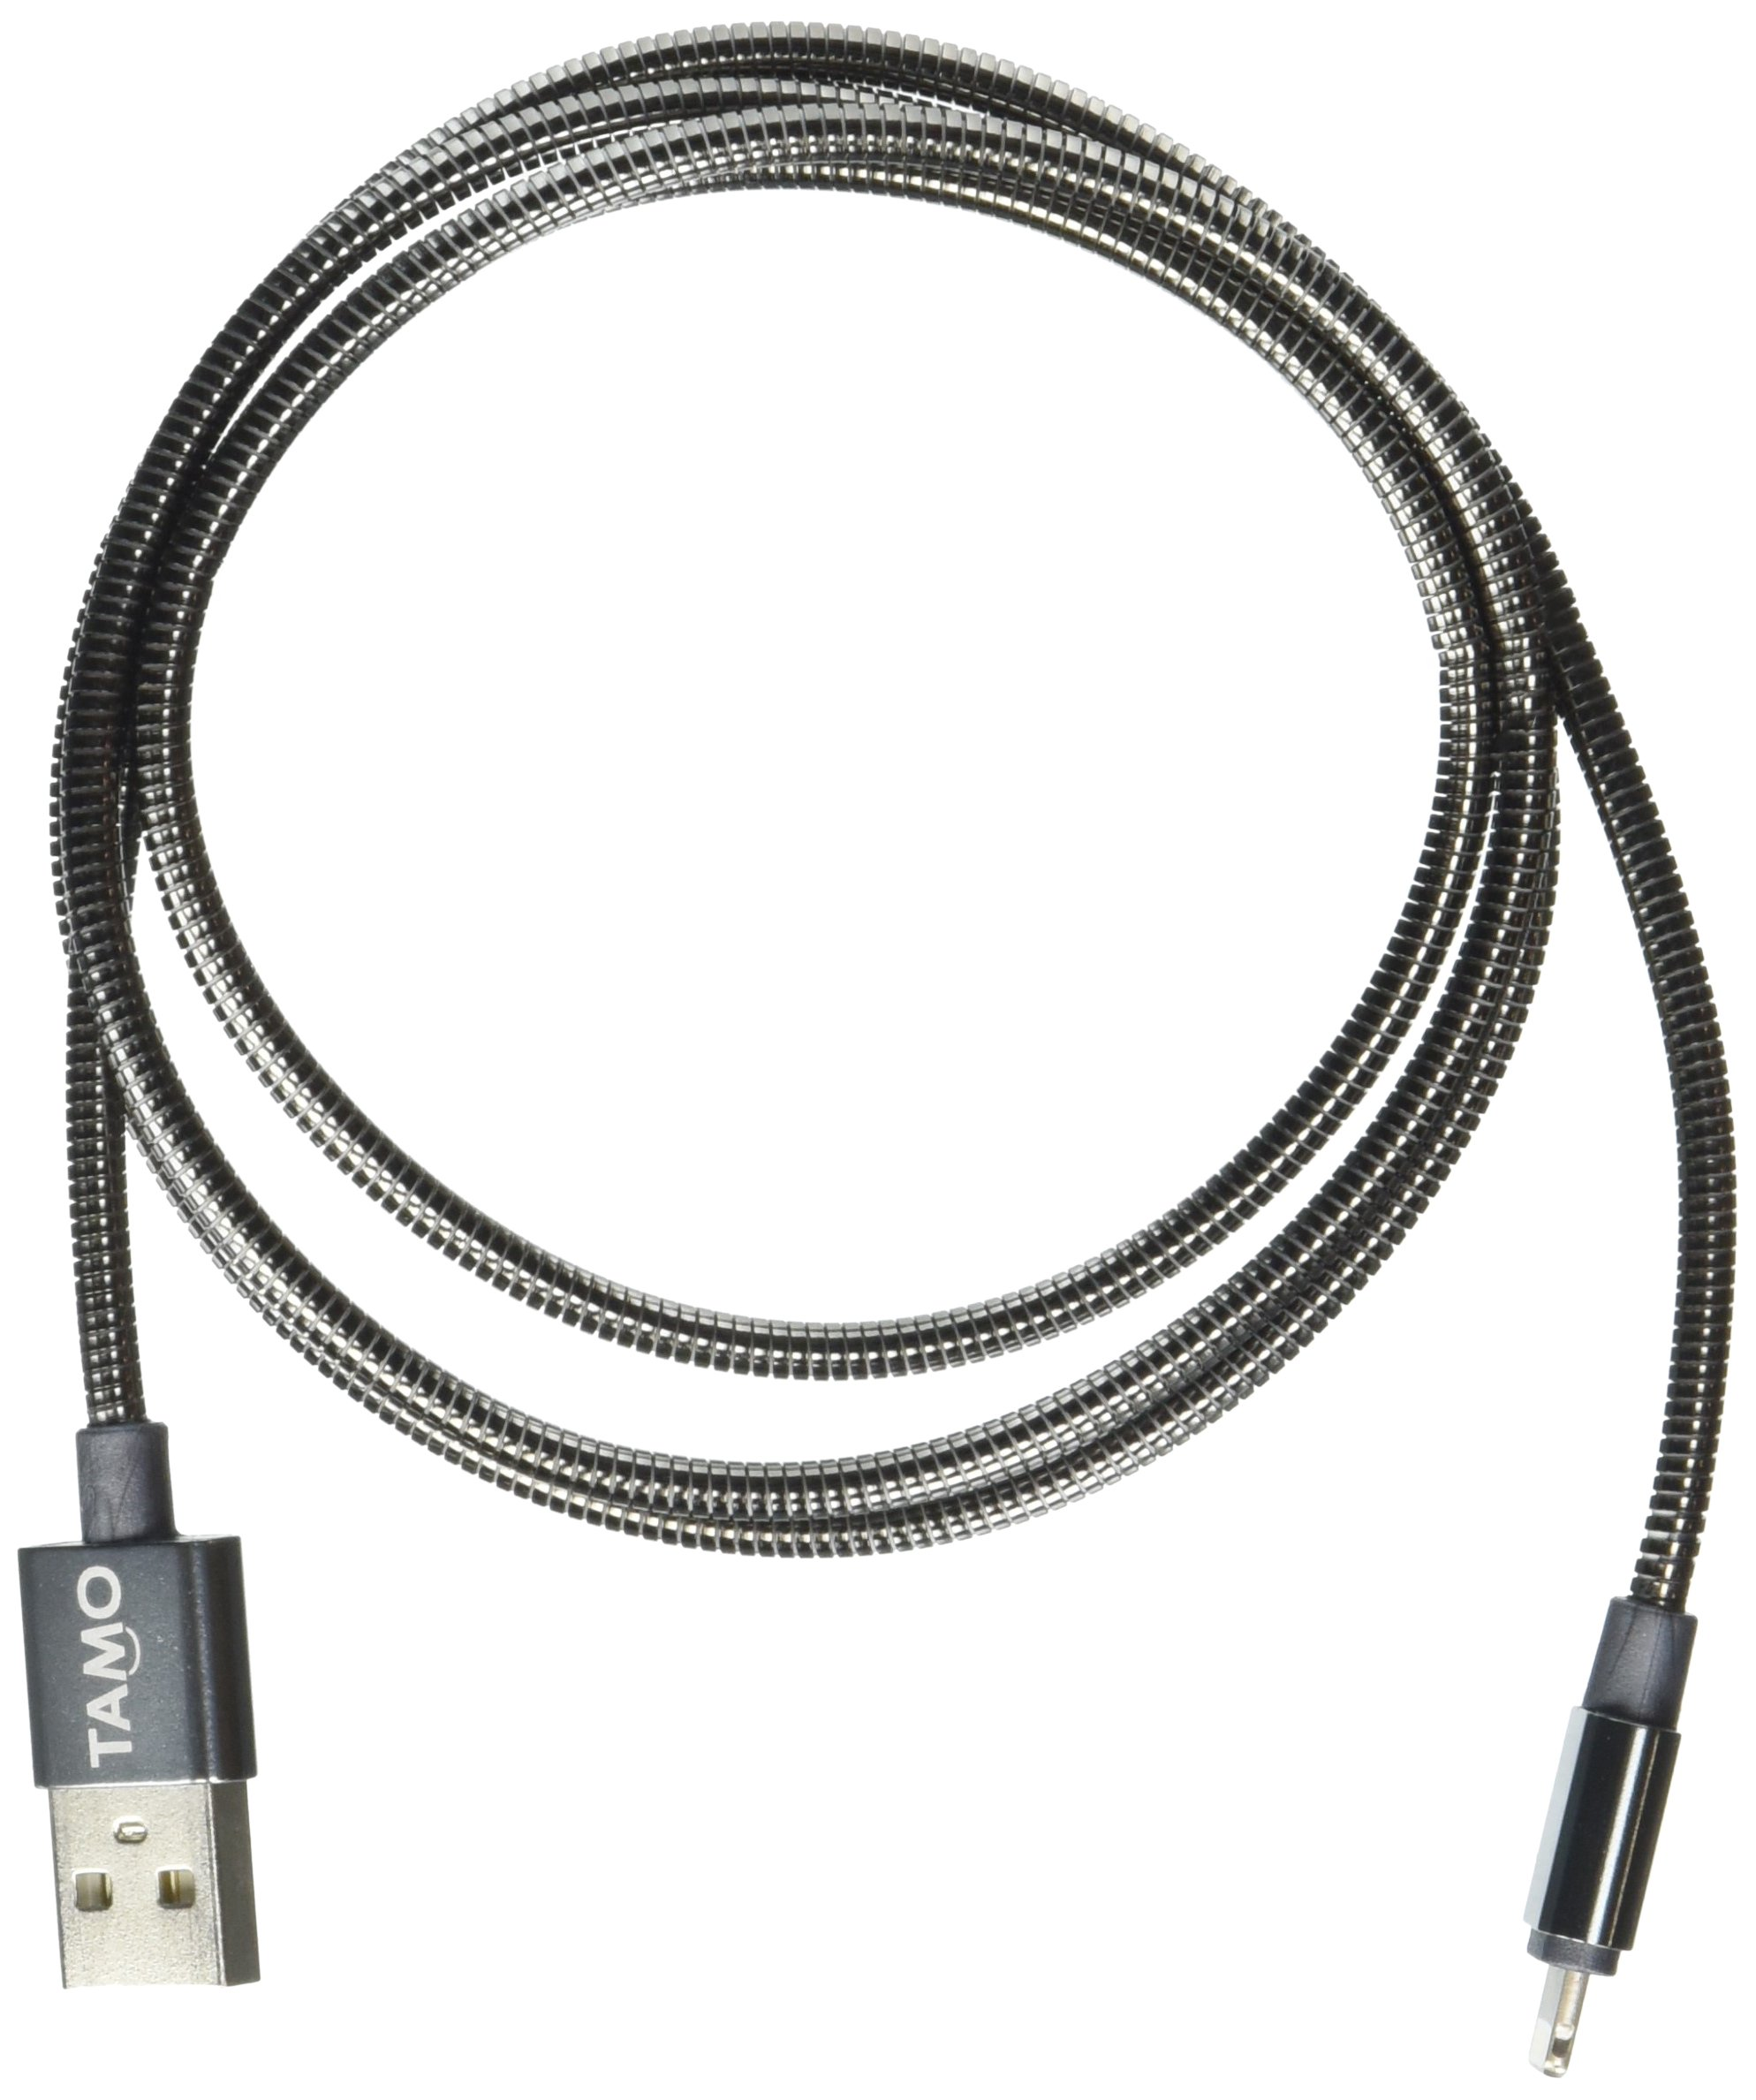 TAMO Forever Cables Steel Edition Executive Style MFI Certified Lightning Cable, 3-Feet, Black